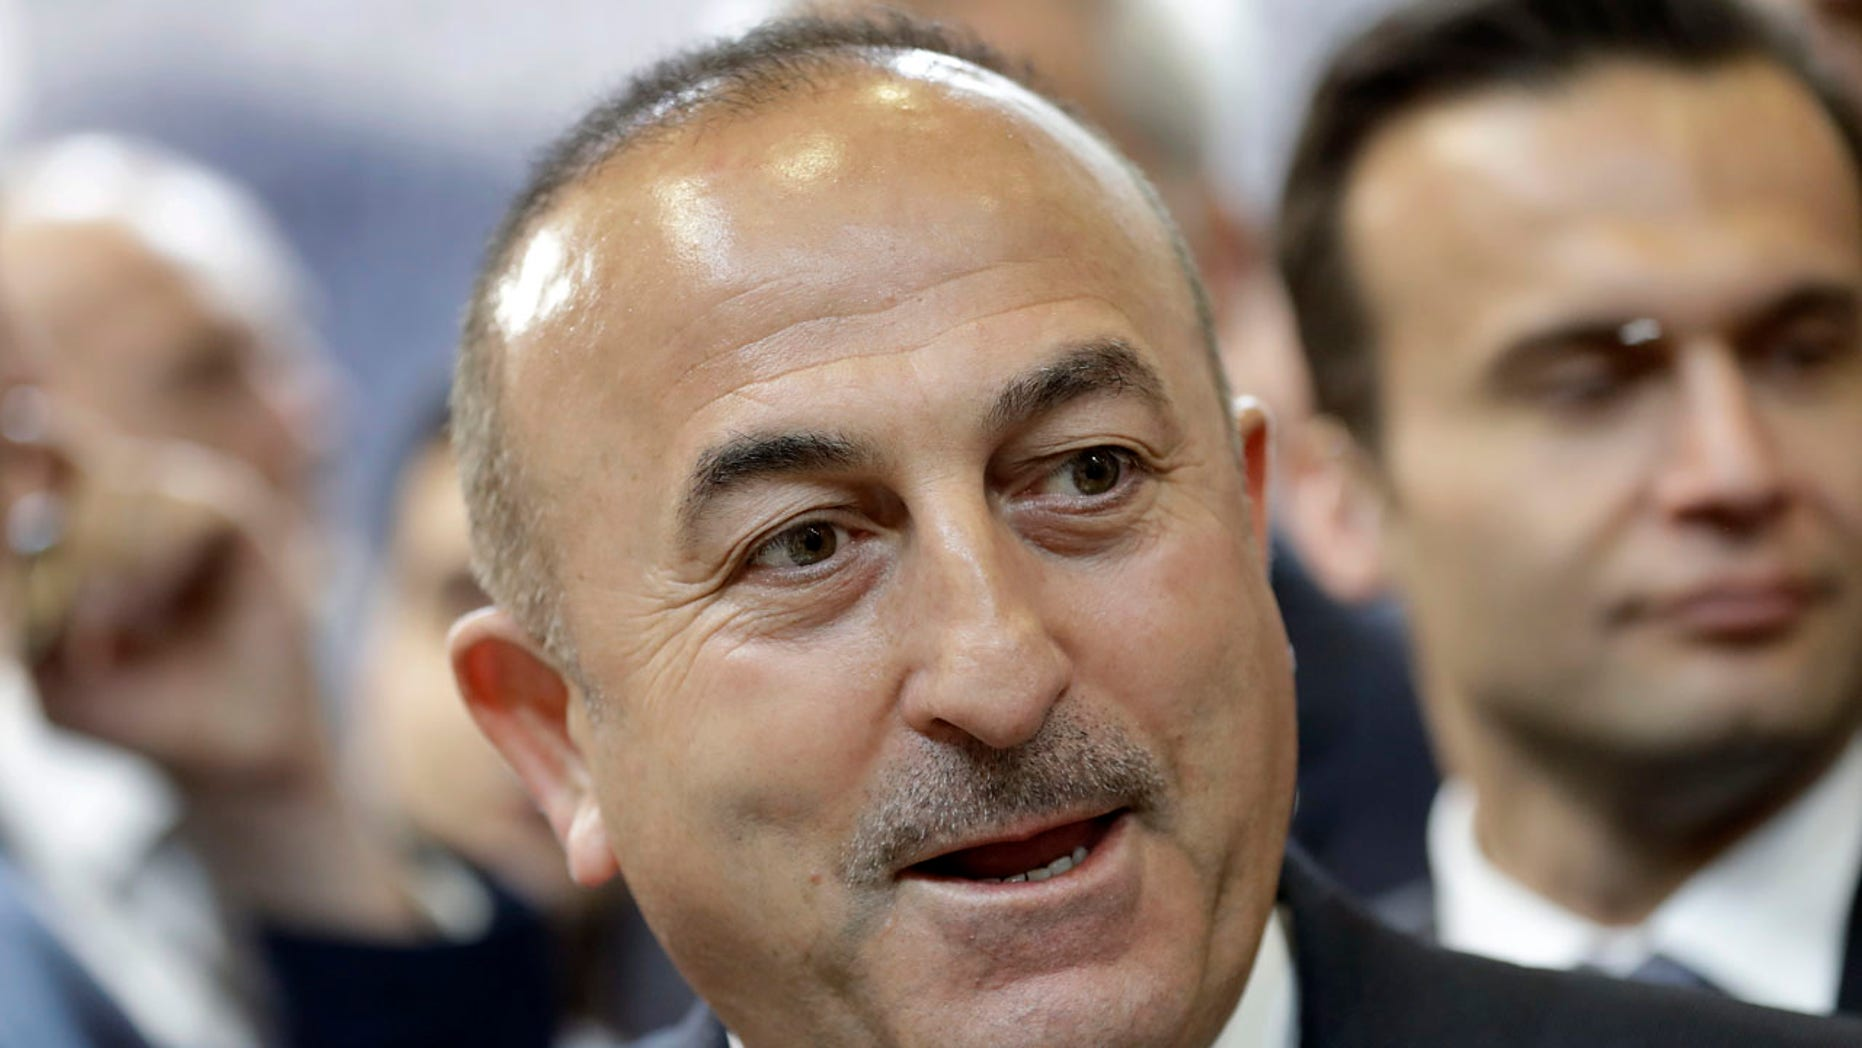 March 8, 2017: The Foreign Minister of Turkey Mevlut Cavusoglu speaks during a visit of the booth of Turkey at the tourism fair ITB in Berlin, Germany.